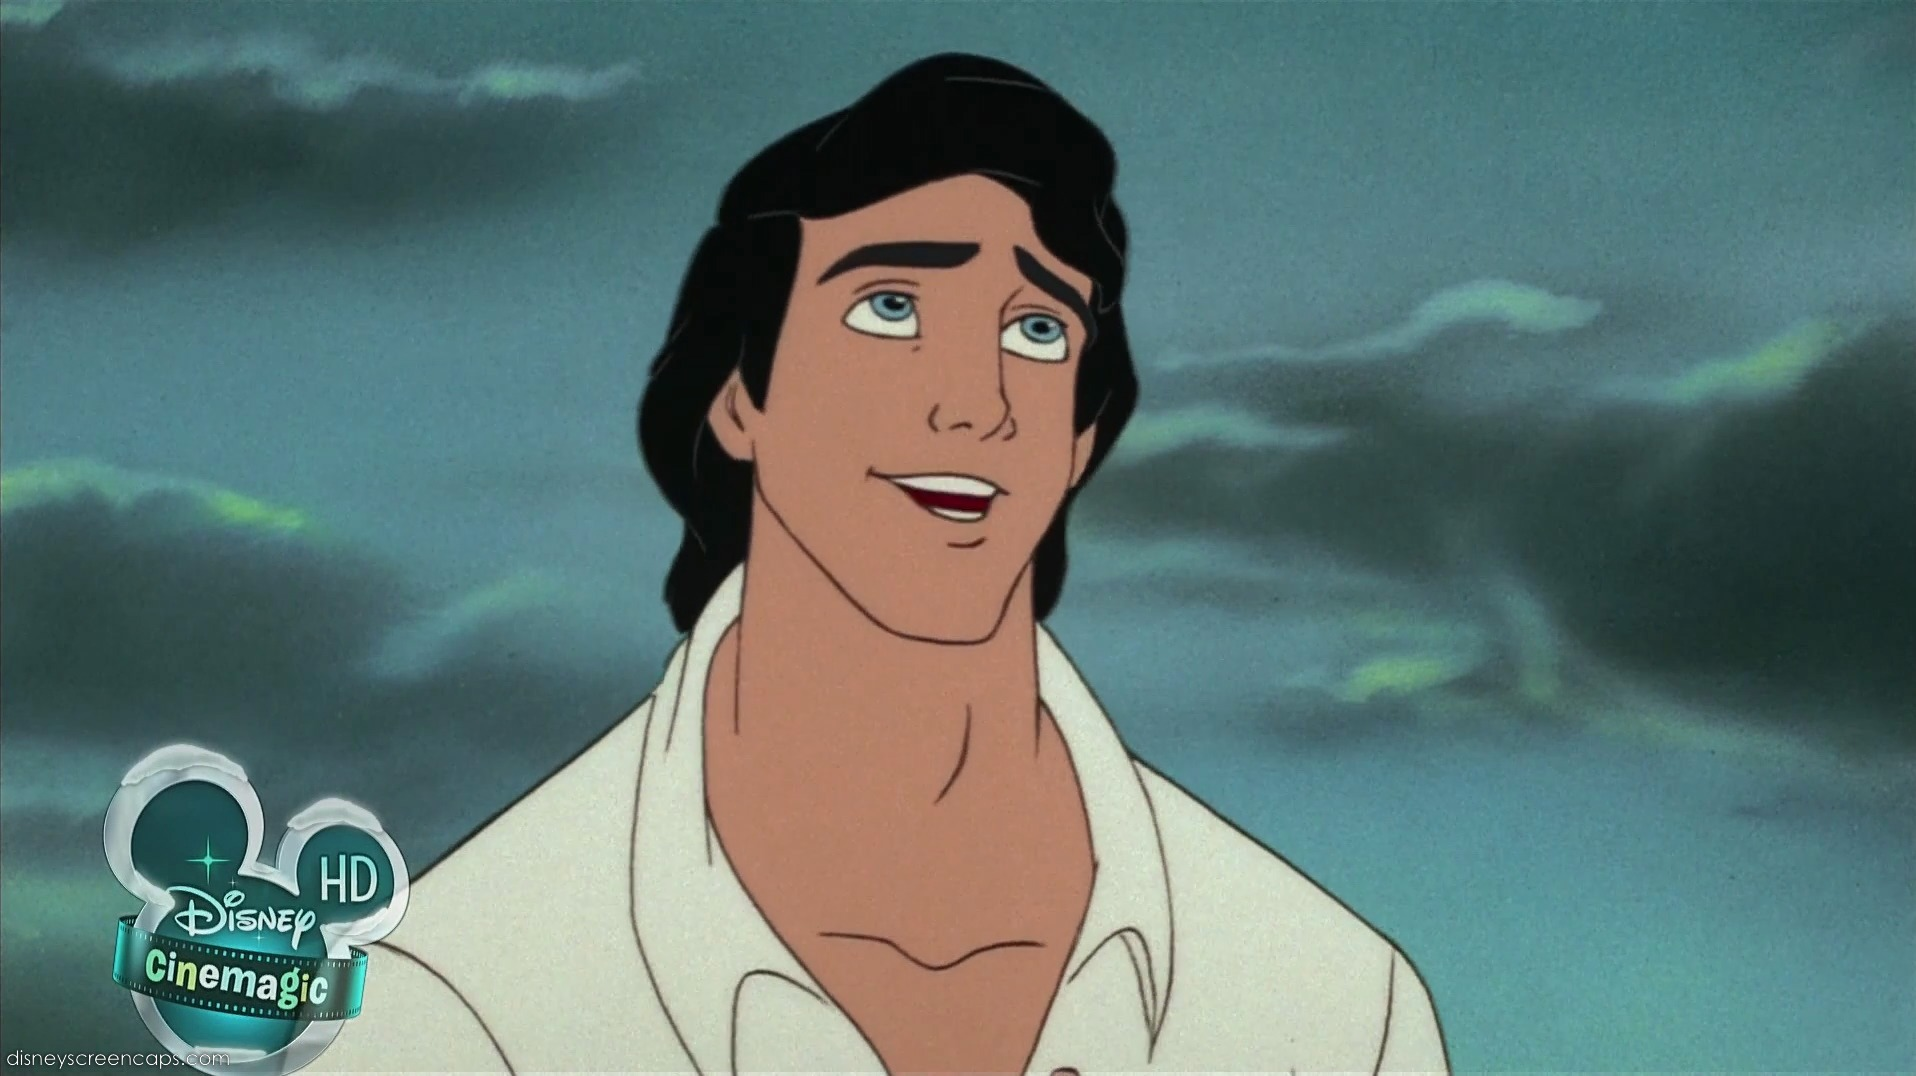 Hot Male Cartoon Characters